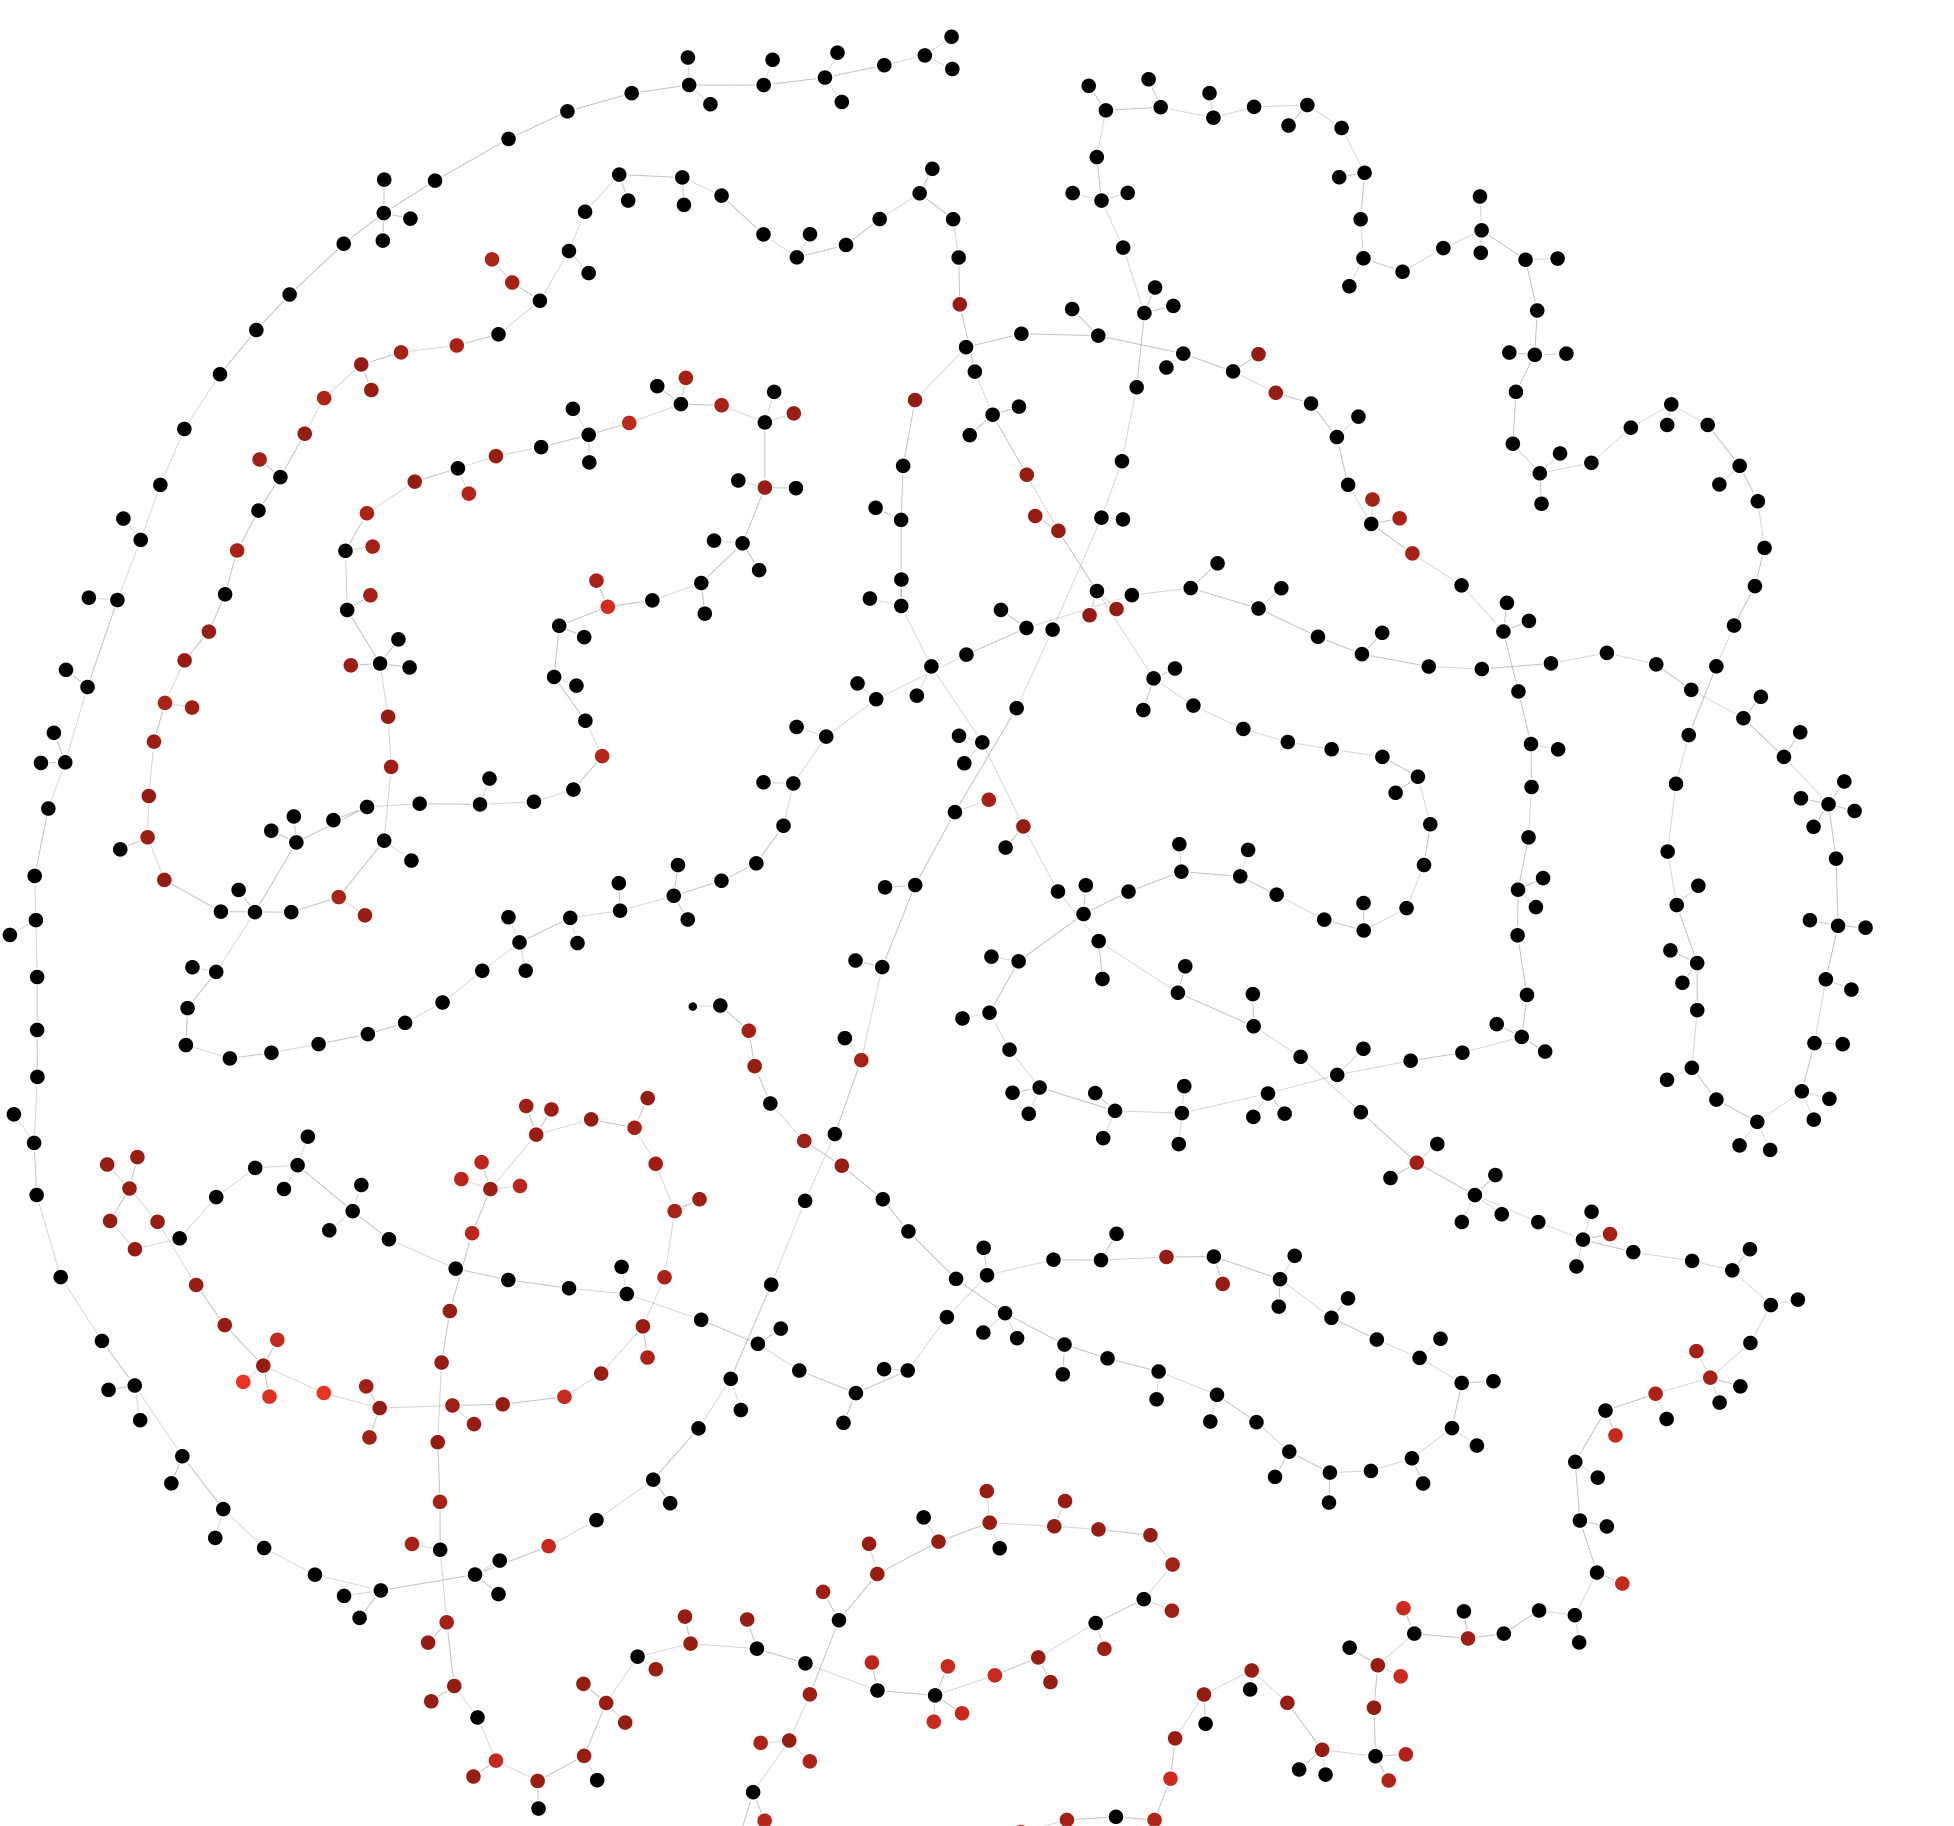 colored-by-transactions